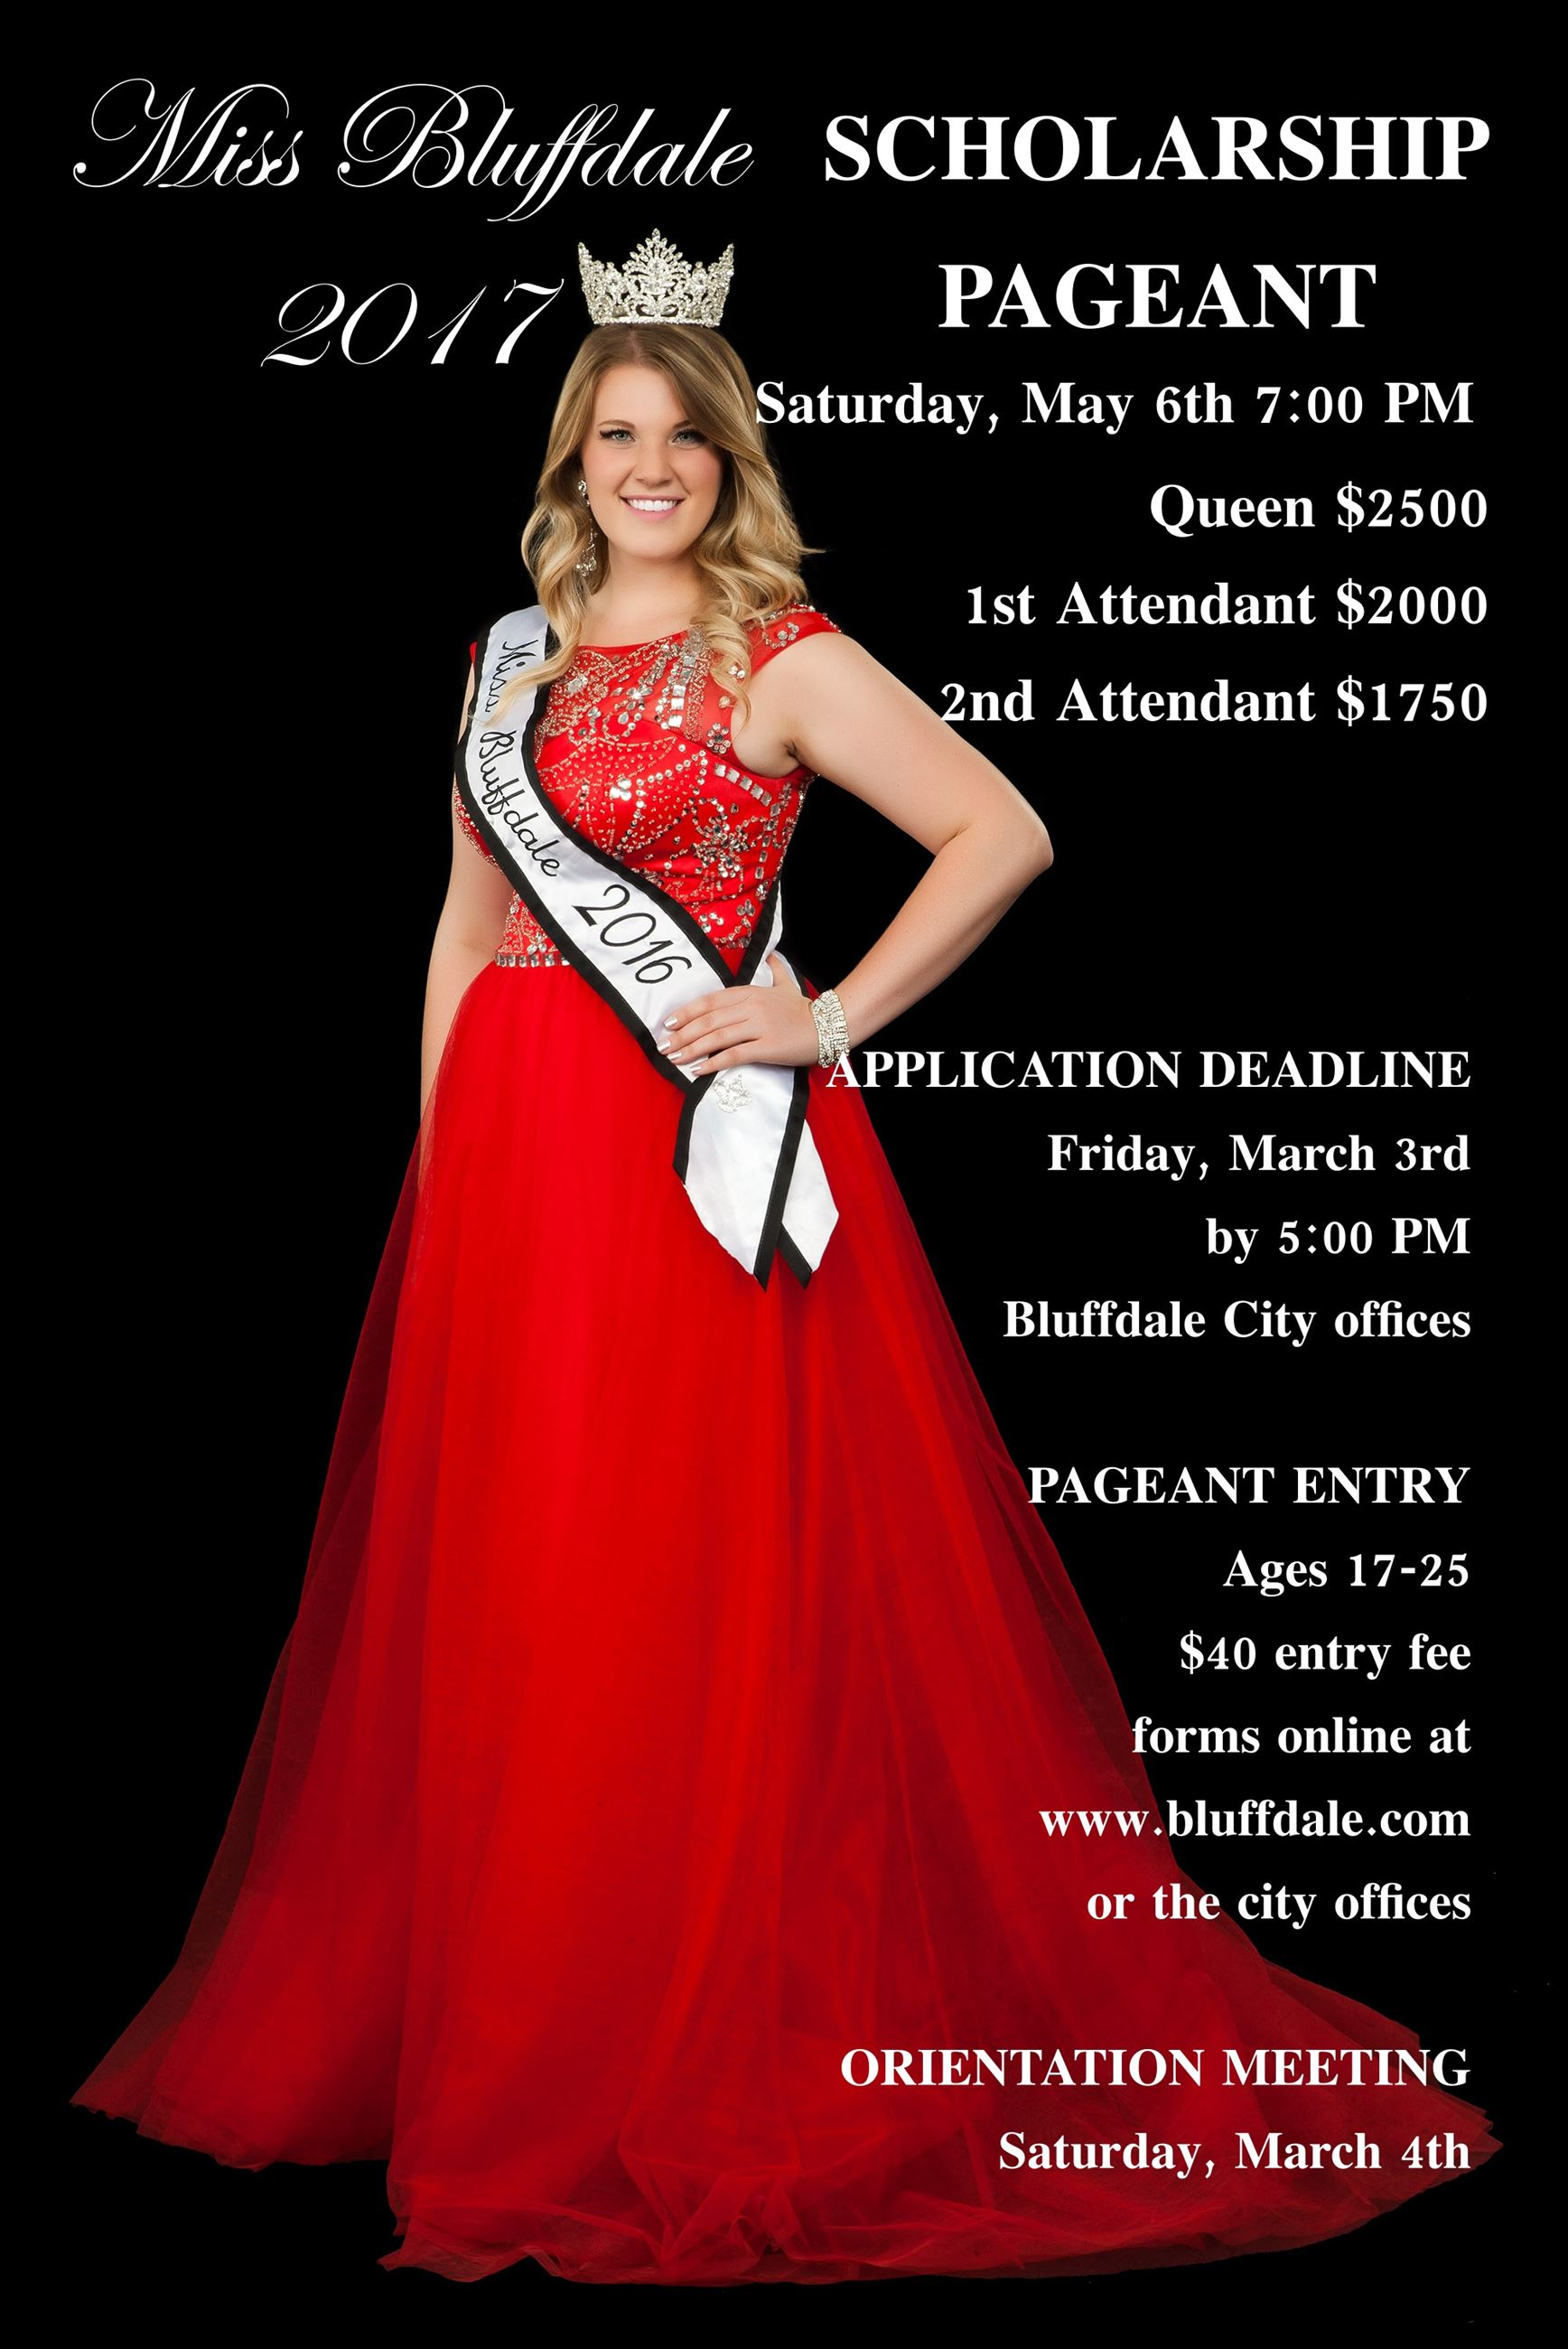 Miss Bluffdale Pageant 2017